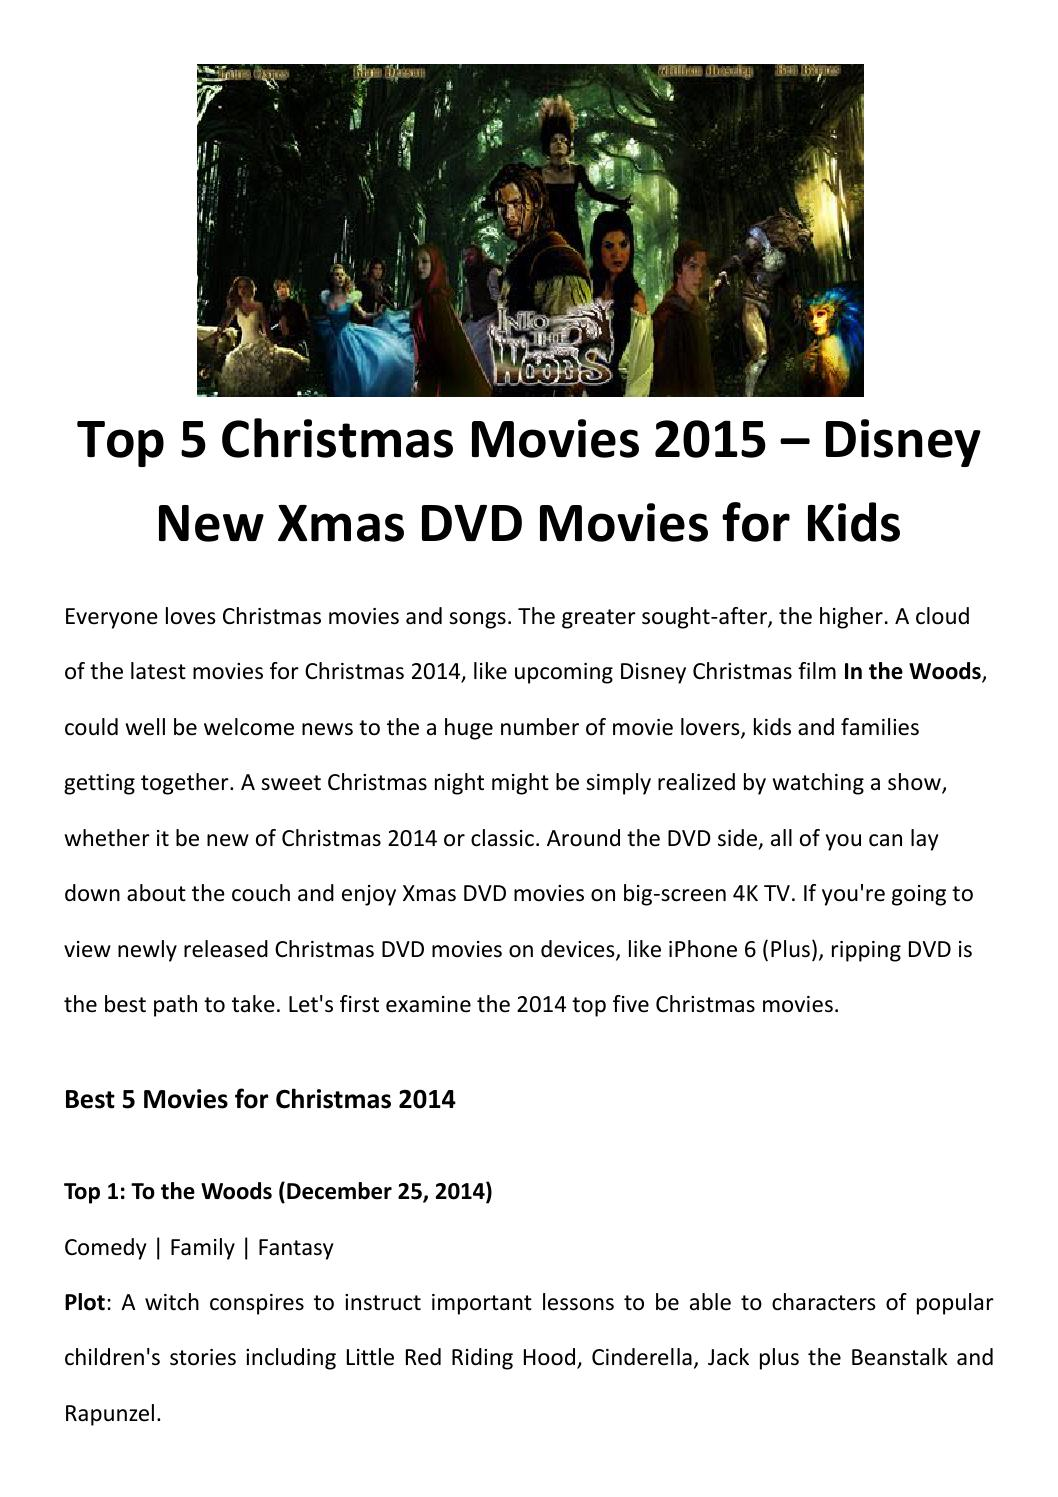 Top 5 christmas movies 2015 by LucyMorries - issuu